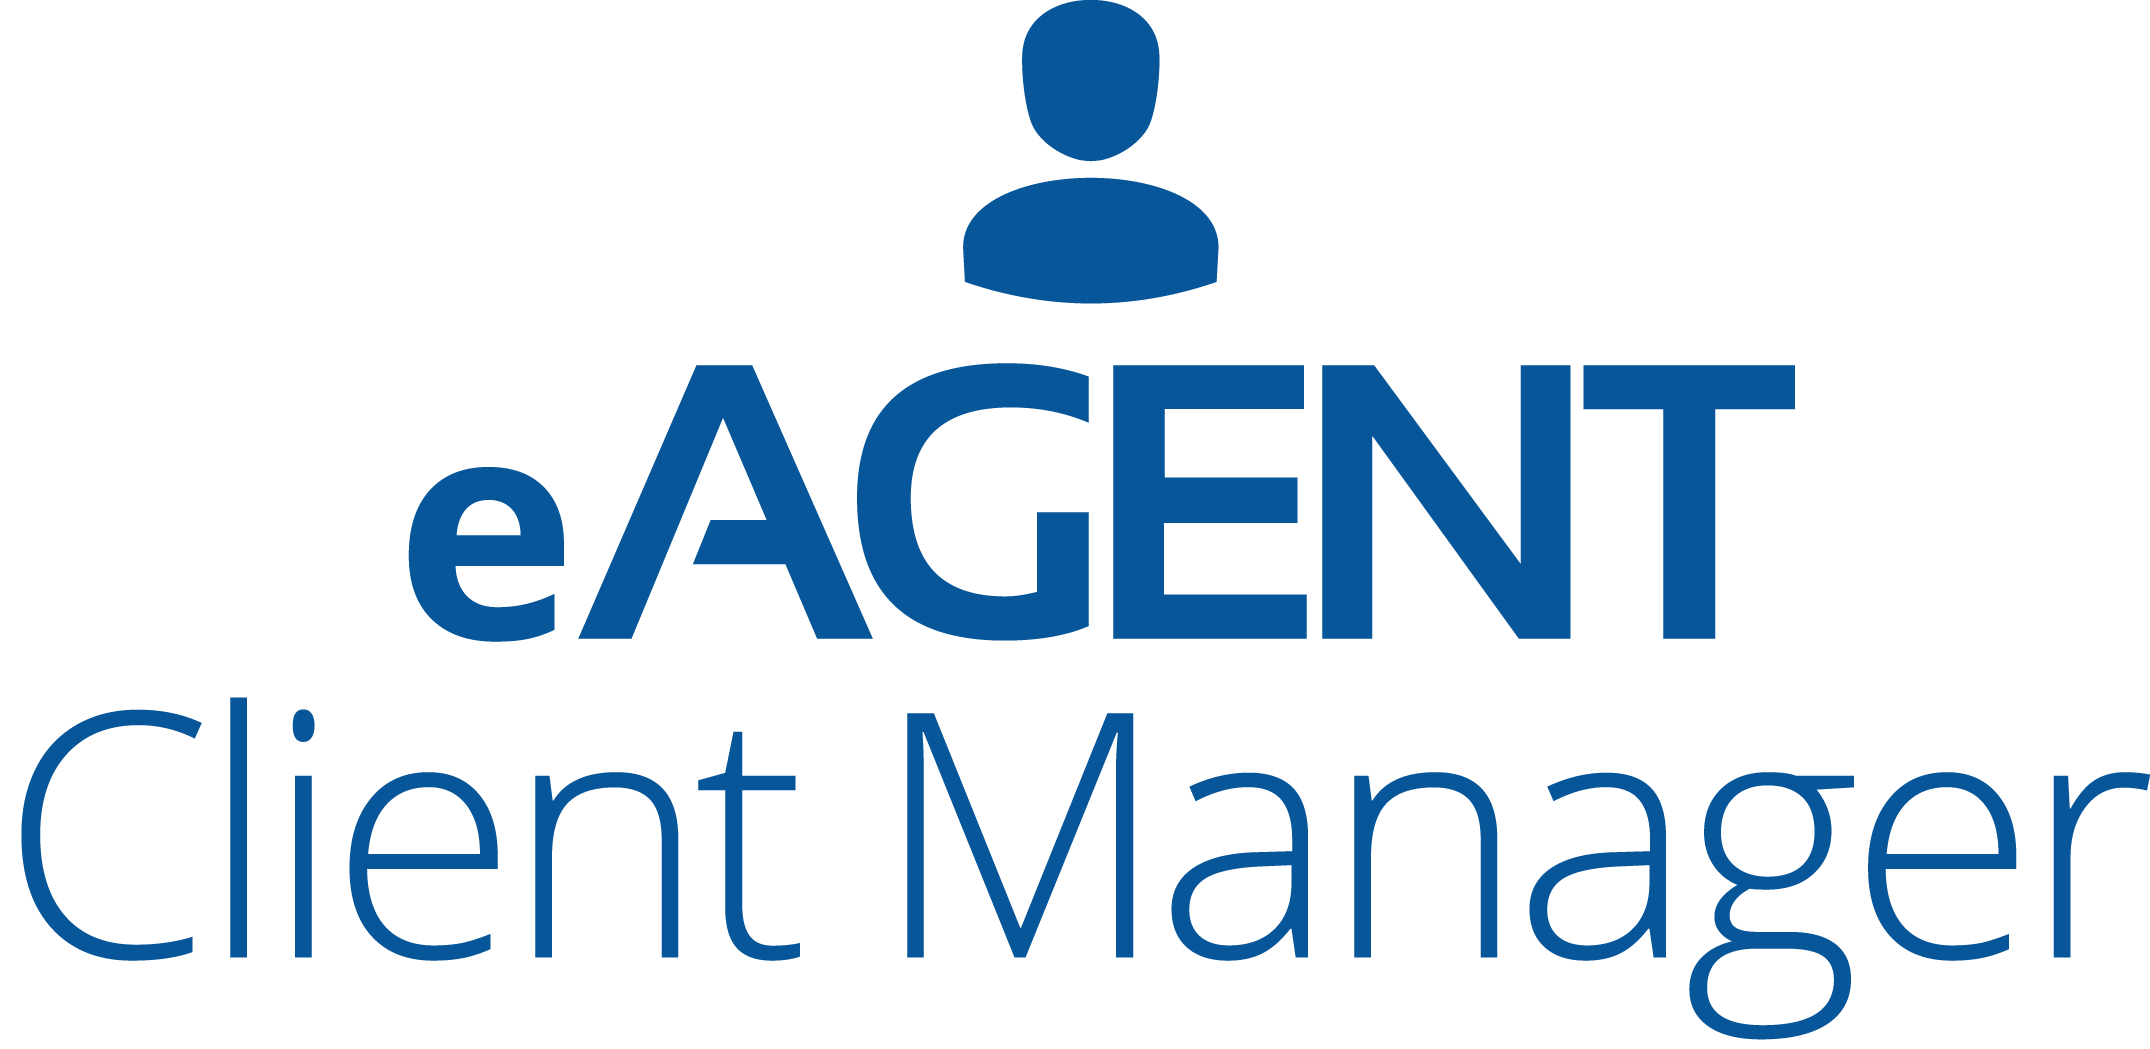 eAgent Client Manager